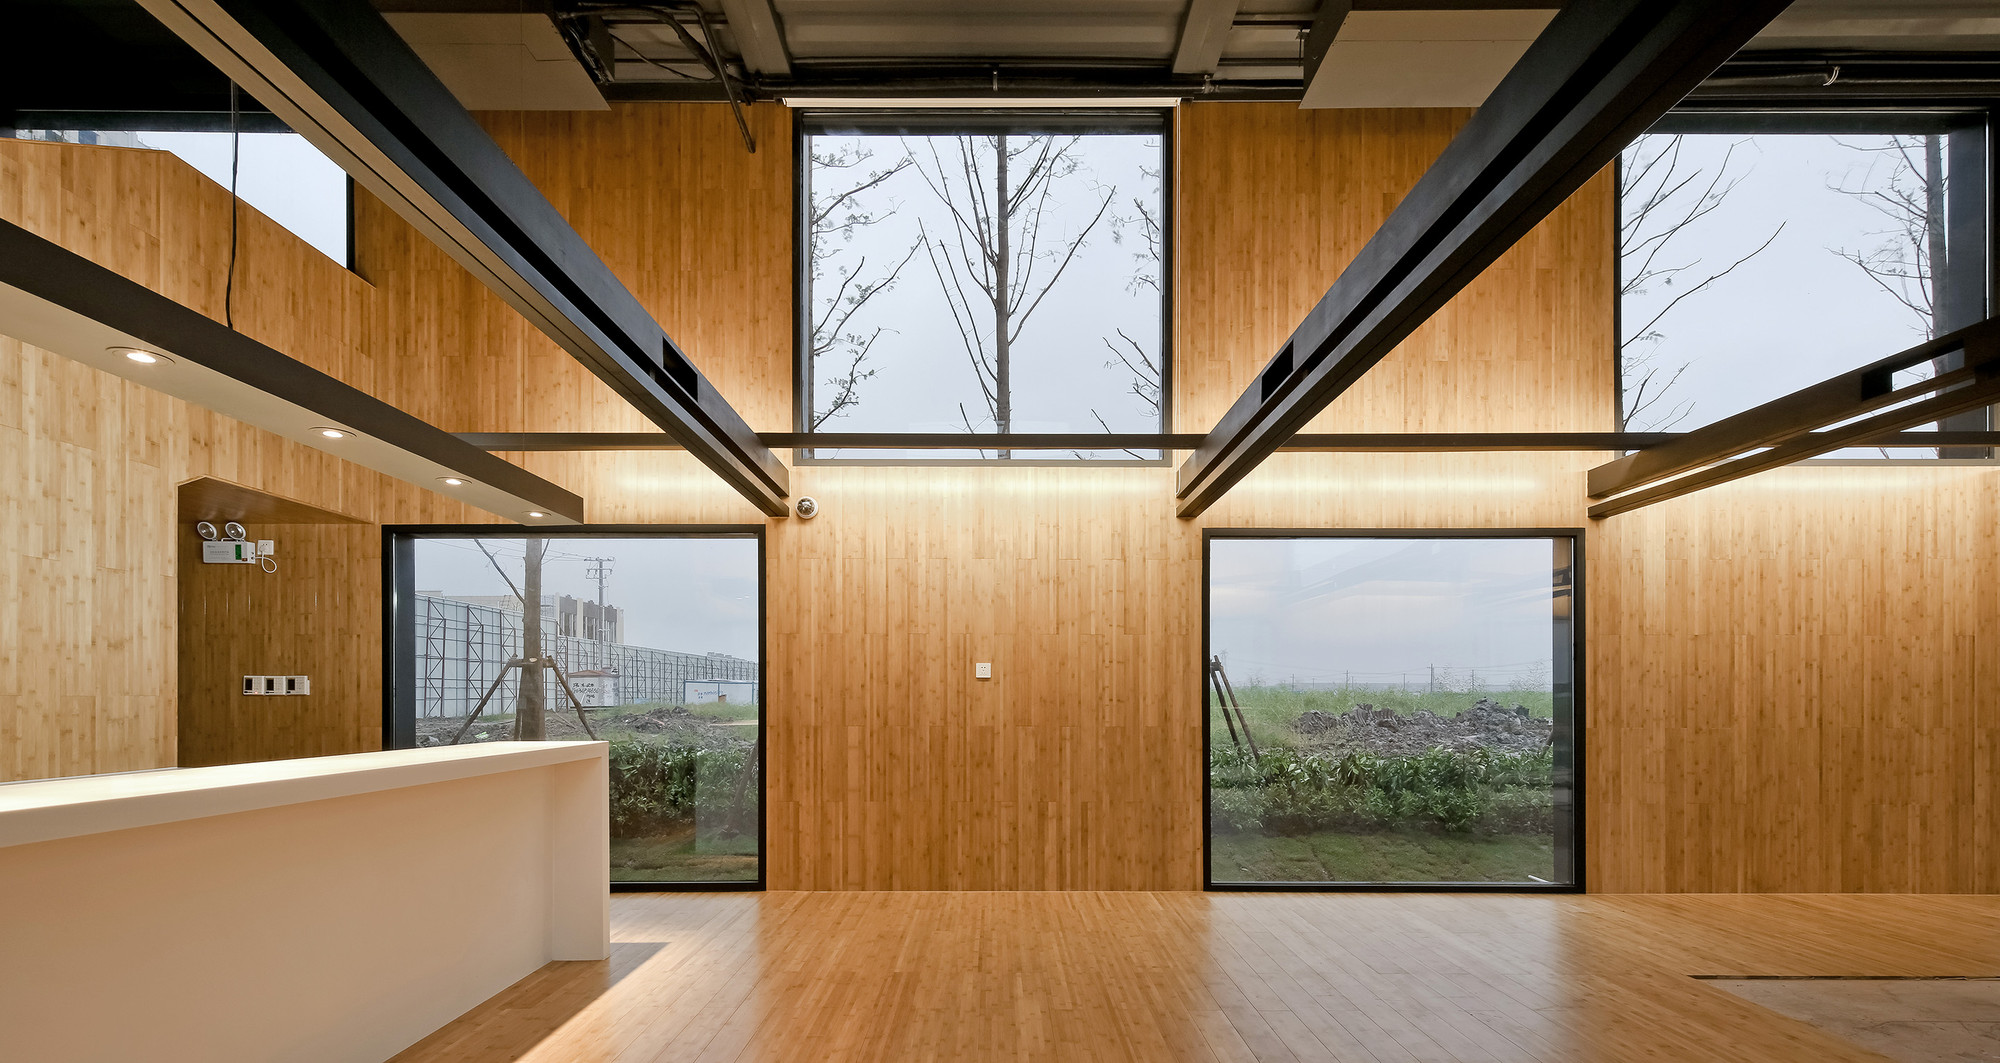 Container Sale Office / Atelier XÜK | ArchDaily